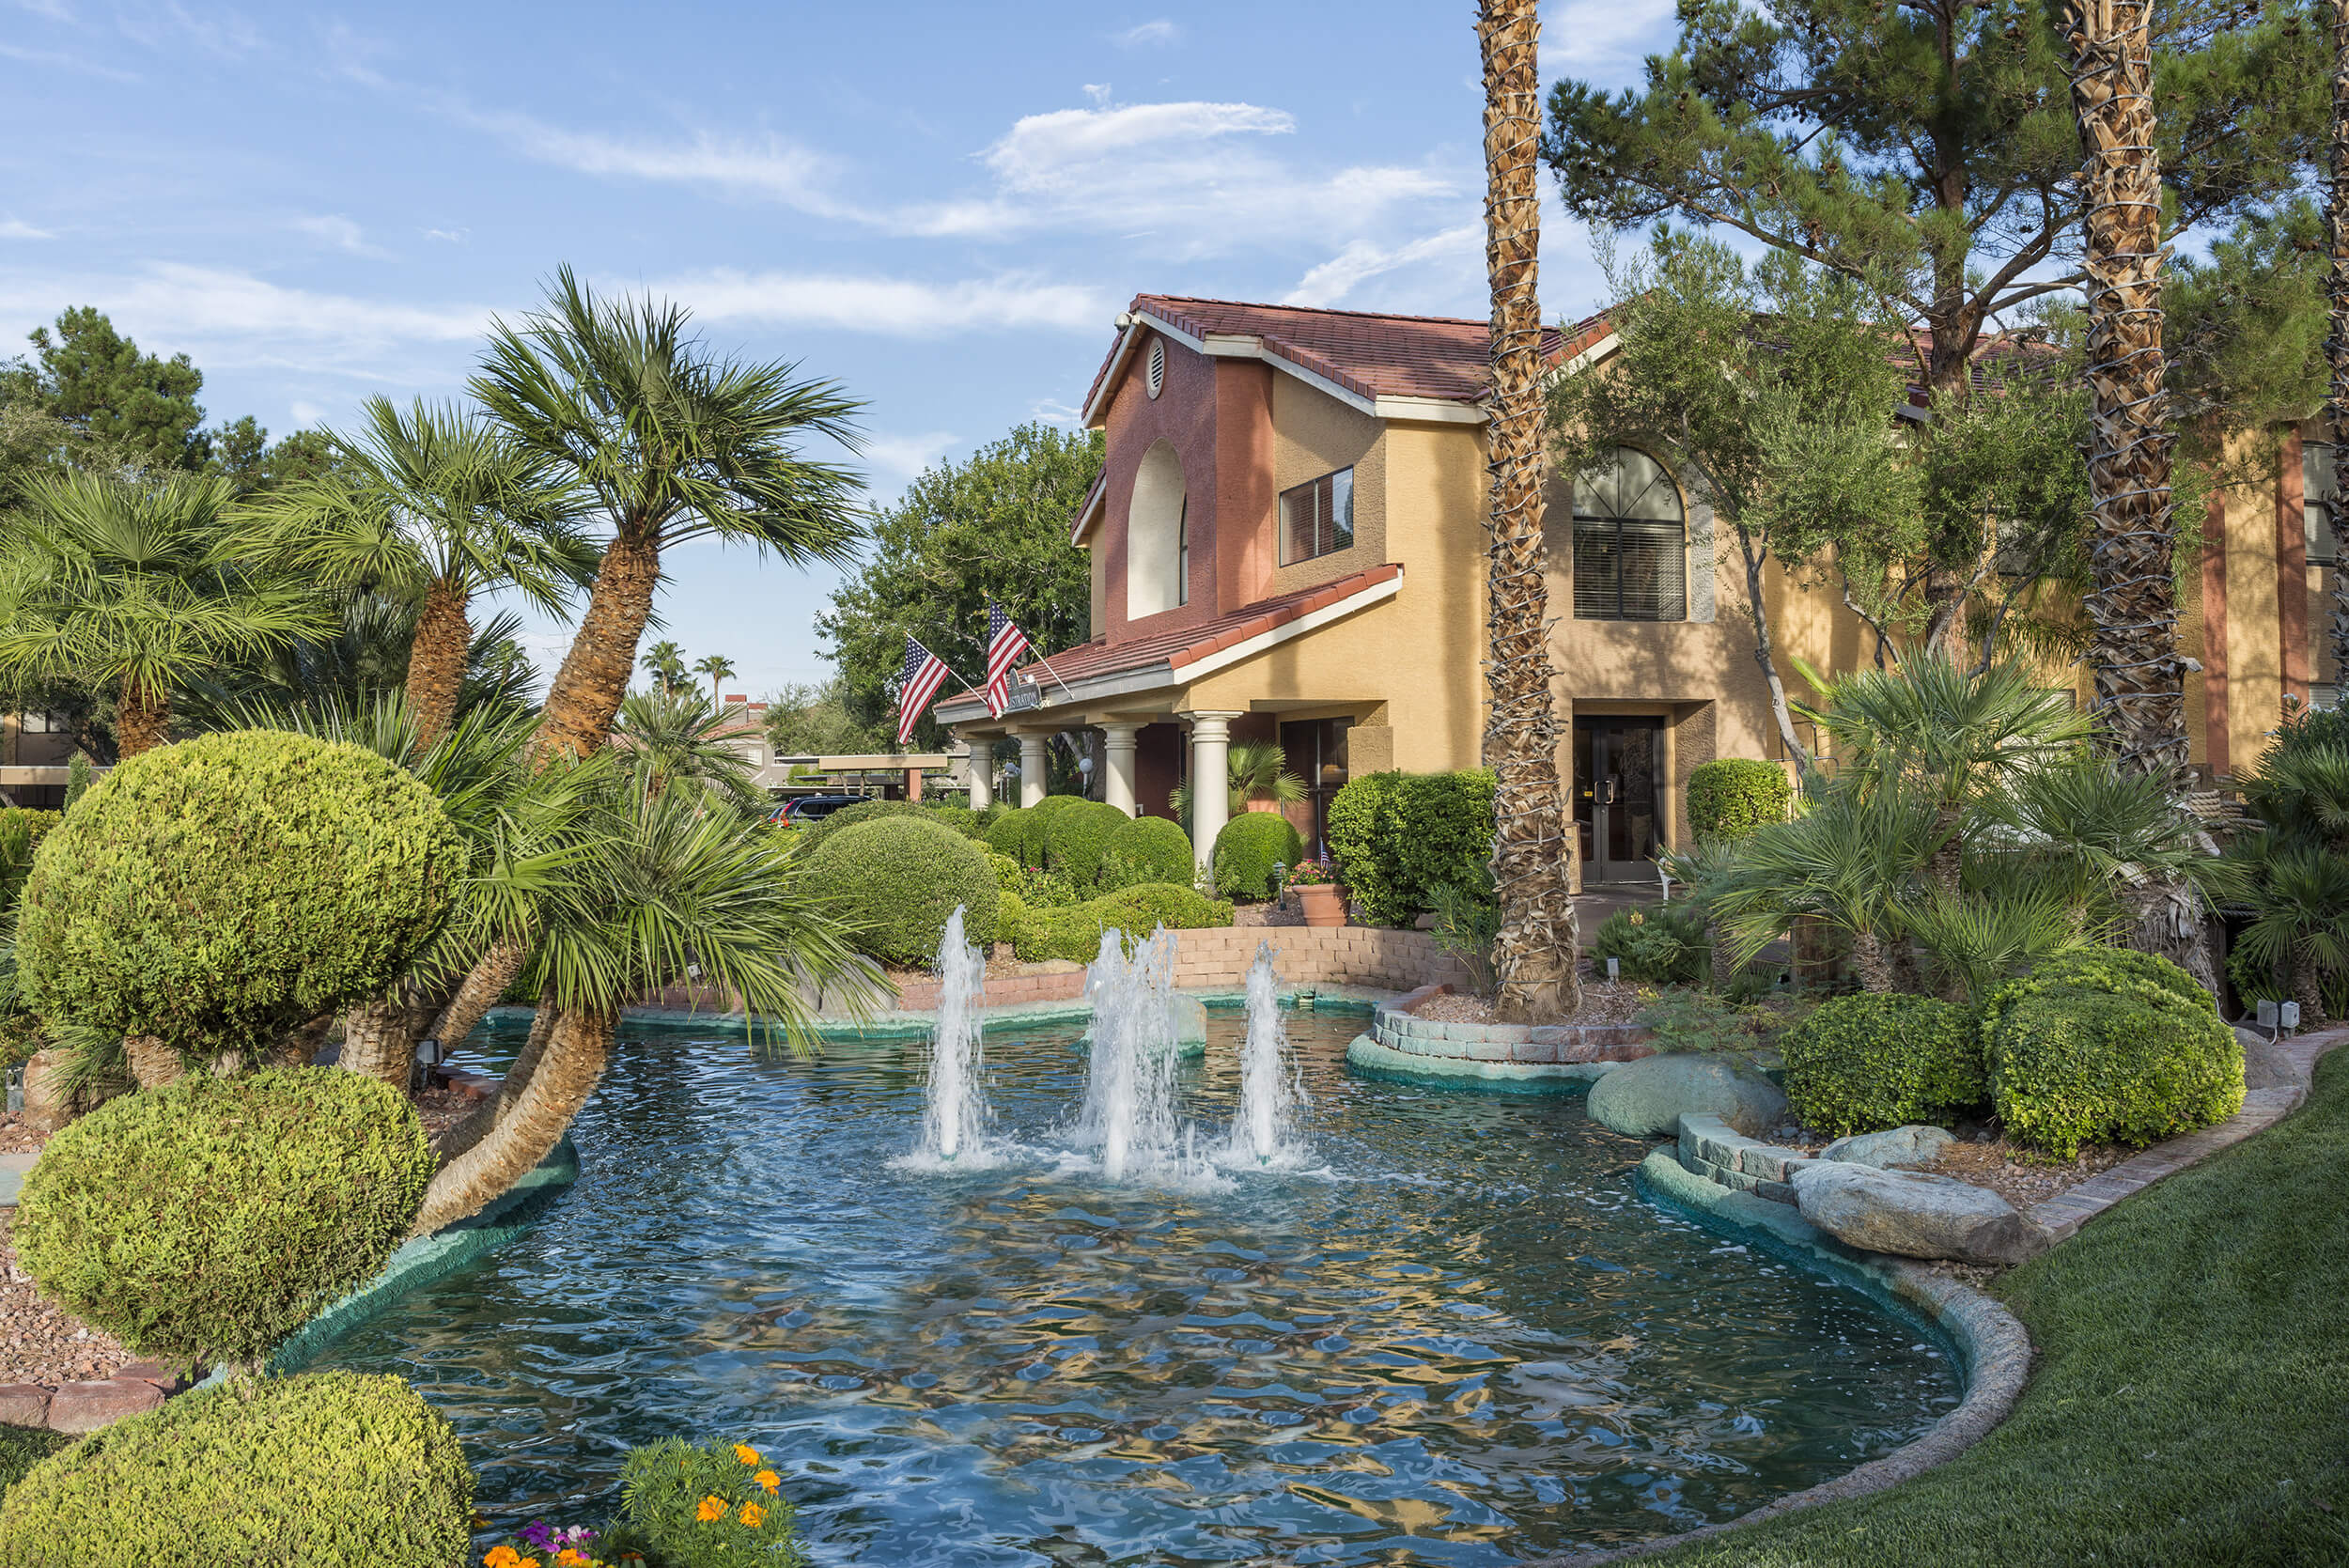 Tropically landscaped resort with pond and fountain | Westgate Flamingo Bay Resort